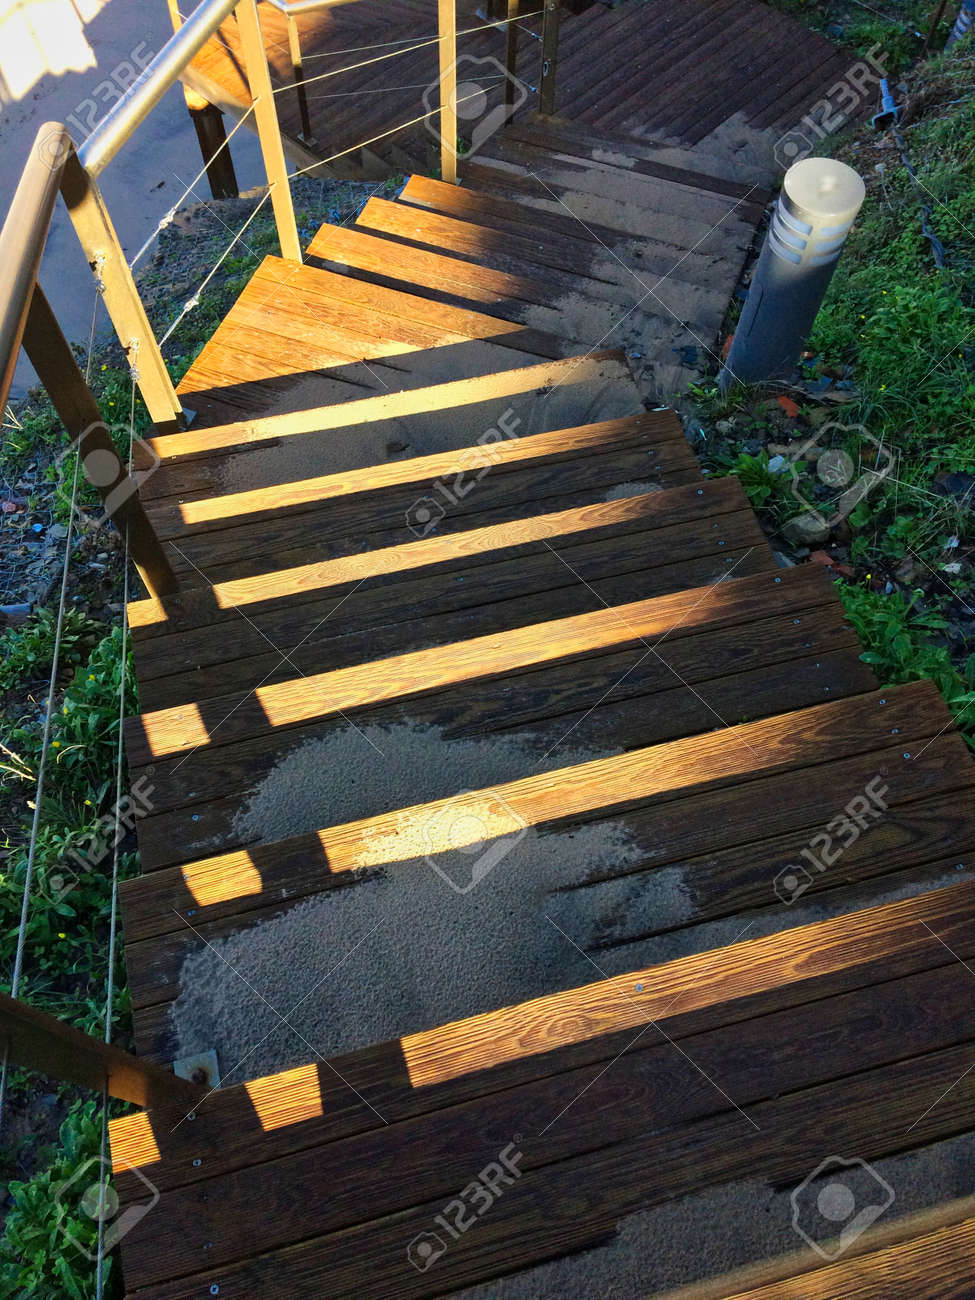 steep wooden staircase leading down, sand scattered on the steps,